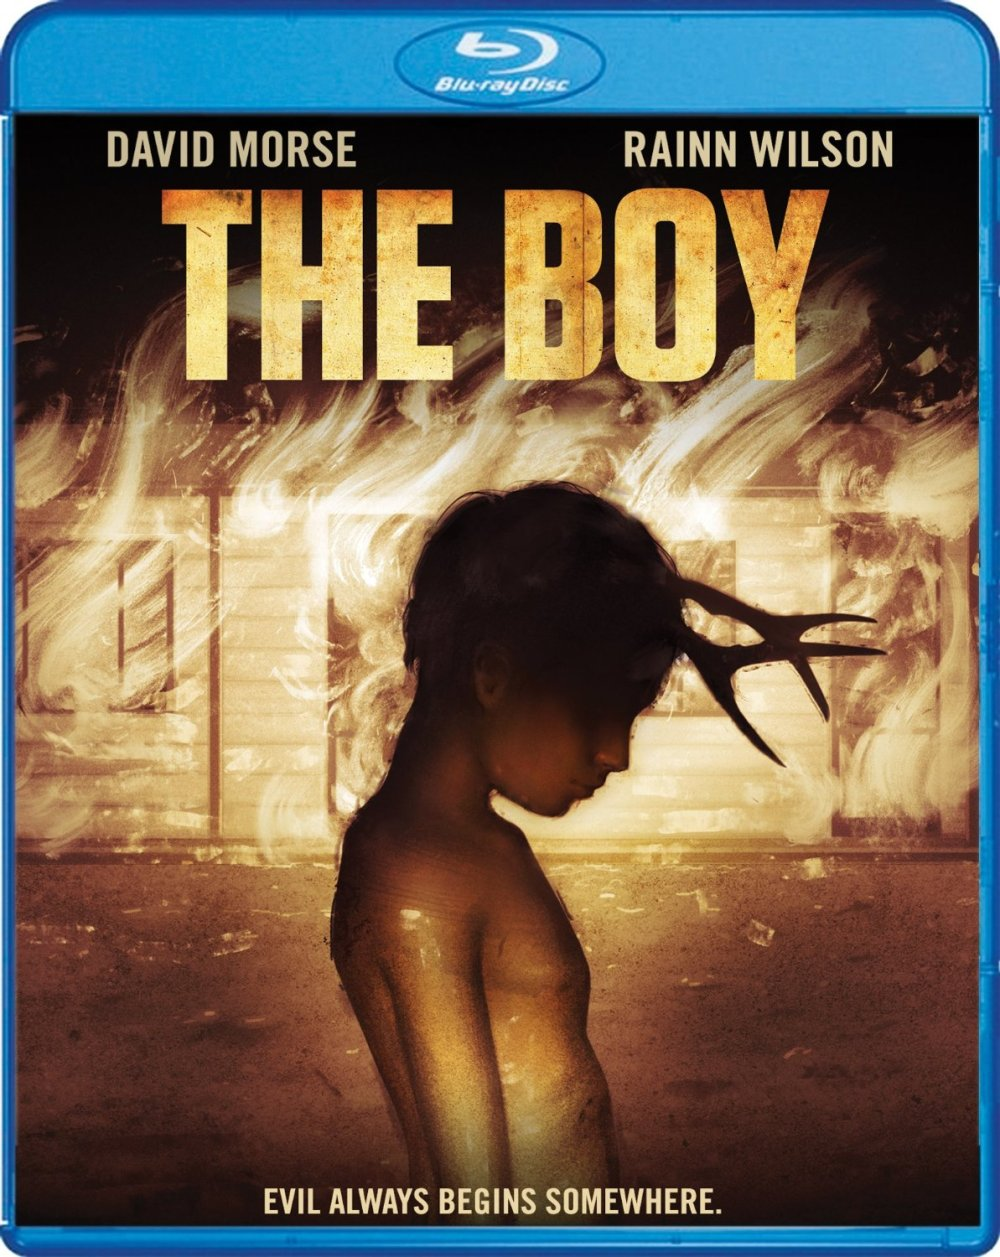 THE BOY cover art courtesy of Scream Factory!